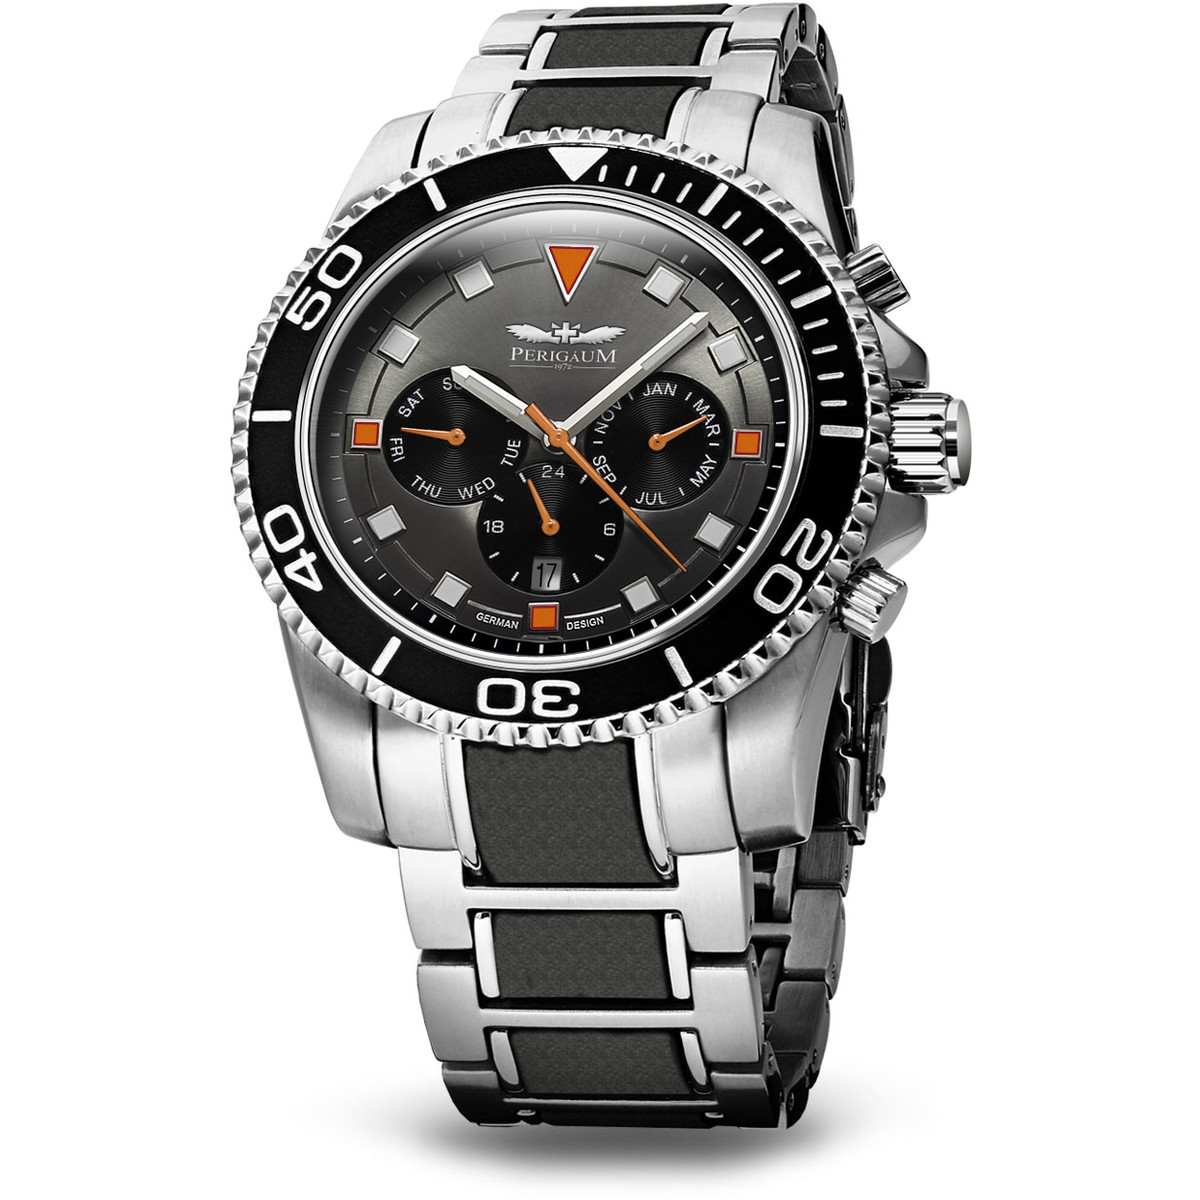 Ceas barbatesc Perigaum Stingray P-1401-OR -orange- Automatic 46 mm 100M de mana original